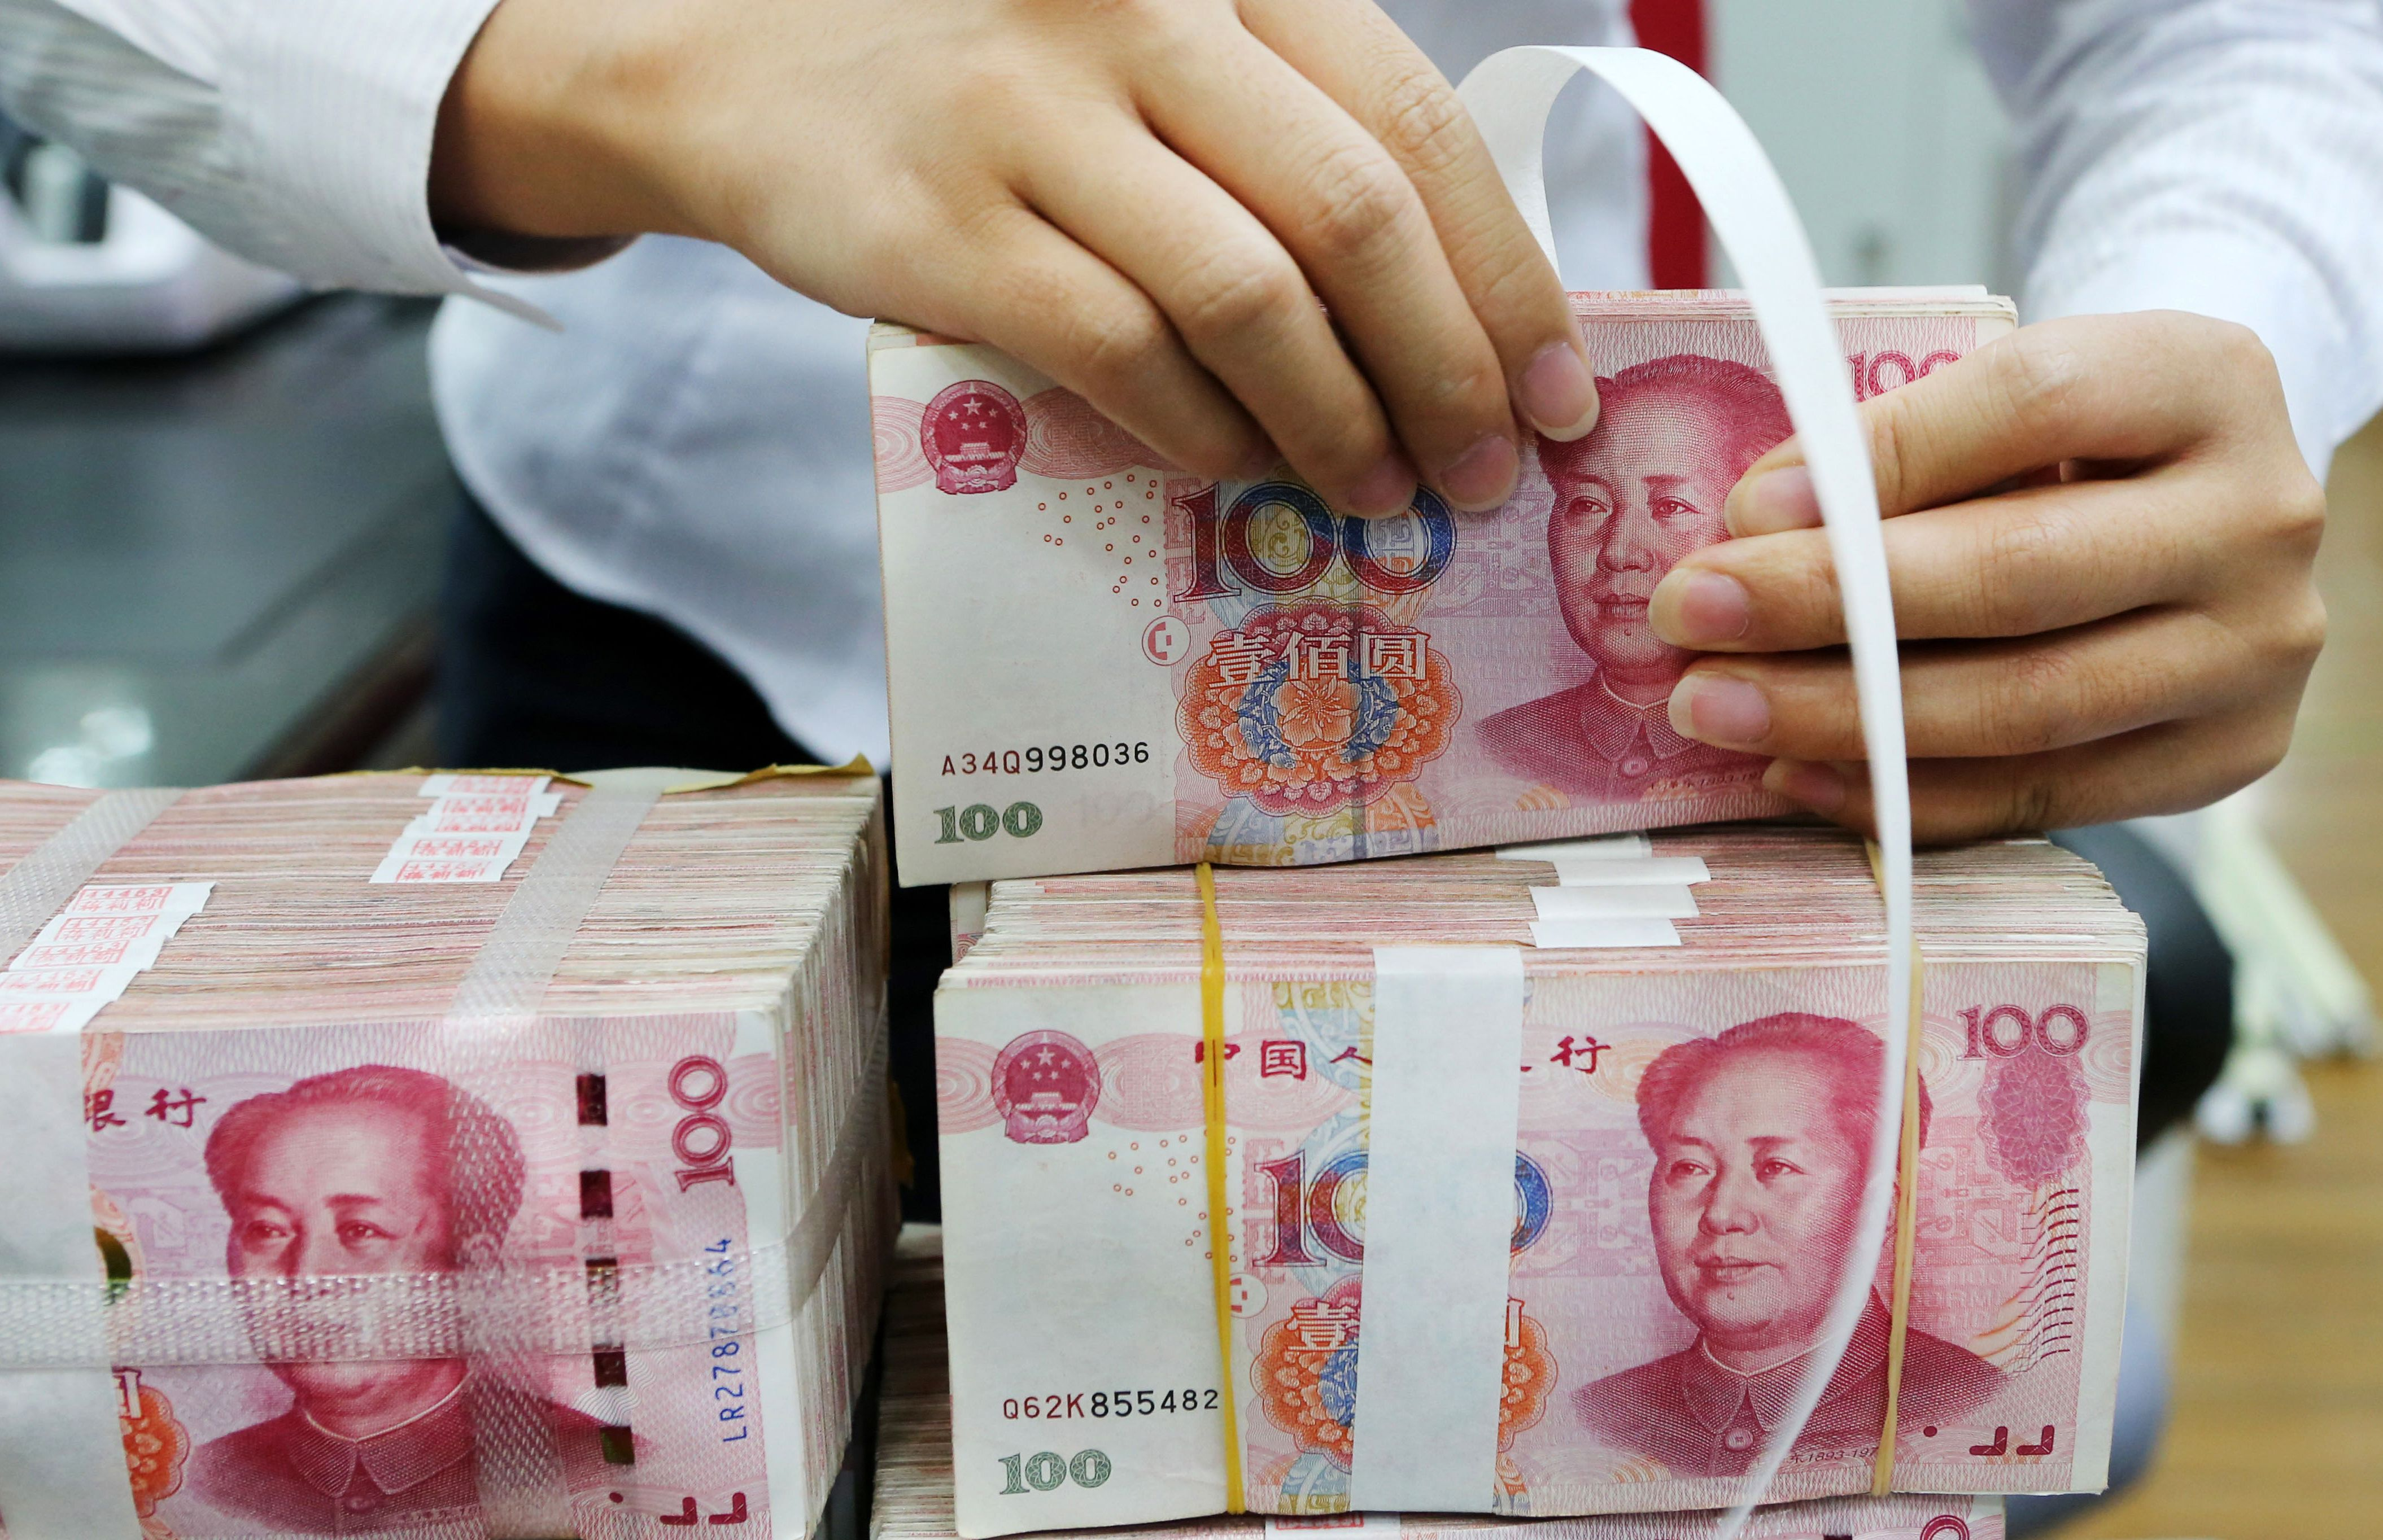 An employee packages 100-yuan notes at a bank in Nantong in China's eastern Jiangsu province on July 23, 2018.